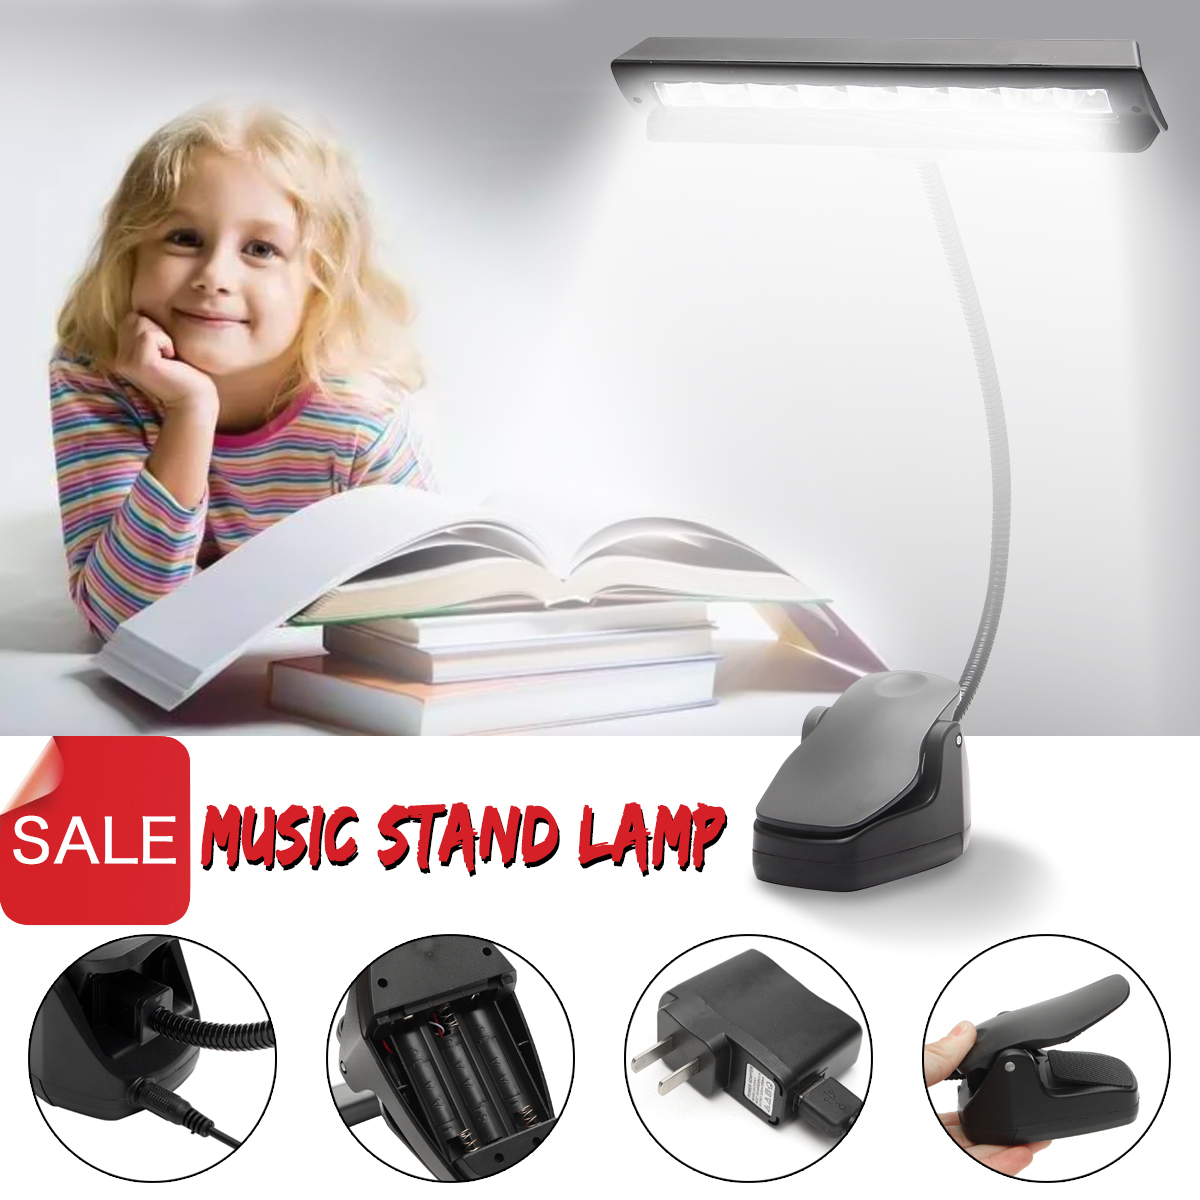 9 LED Clip-on Music Stand Clamp Night Light Bed Table Desk Reading Lamp US Plug by